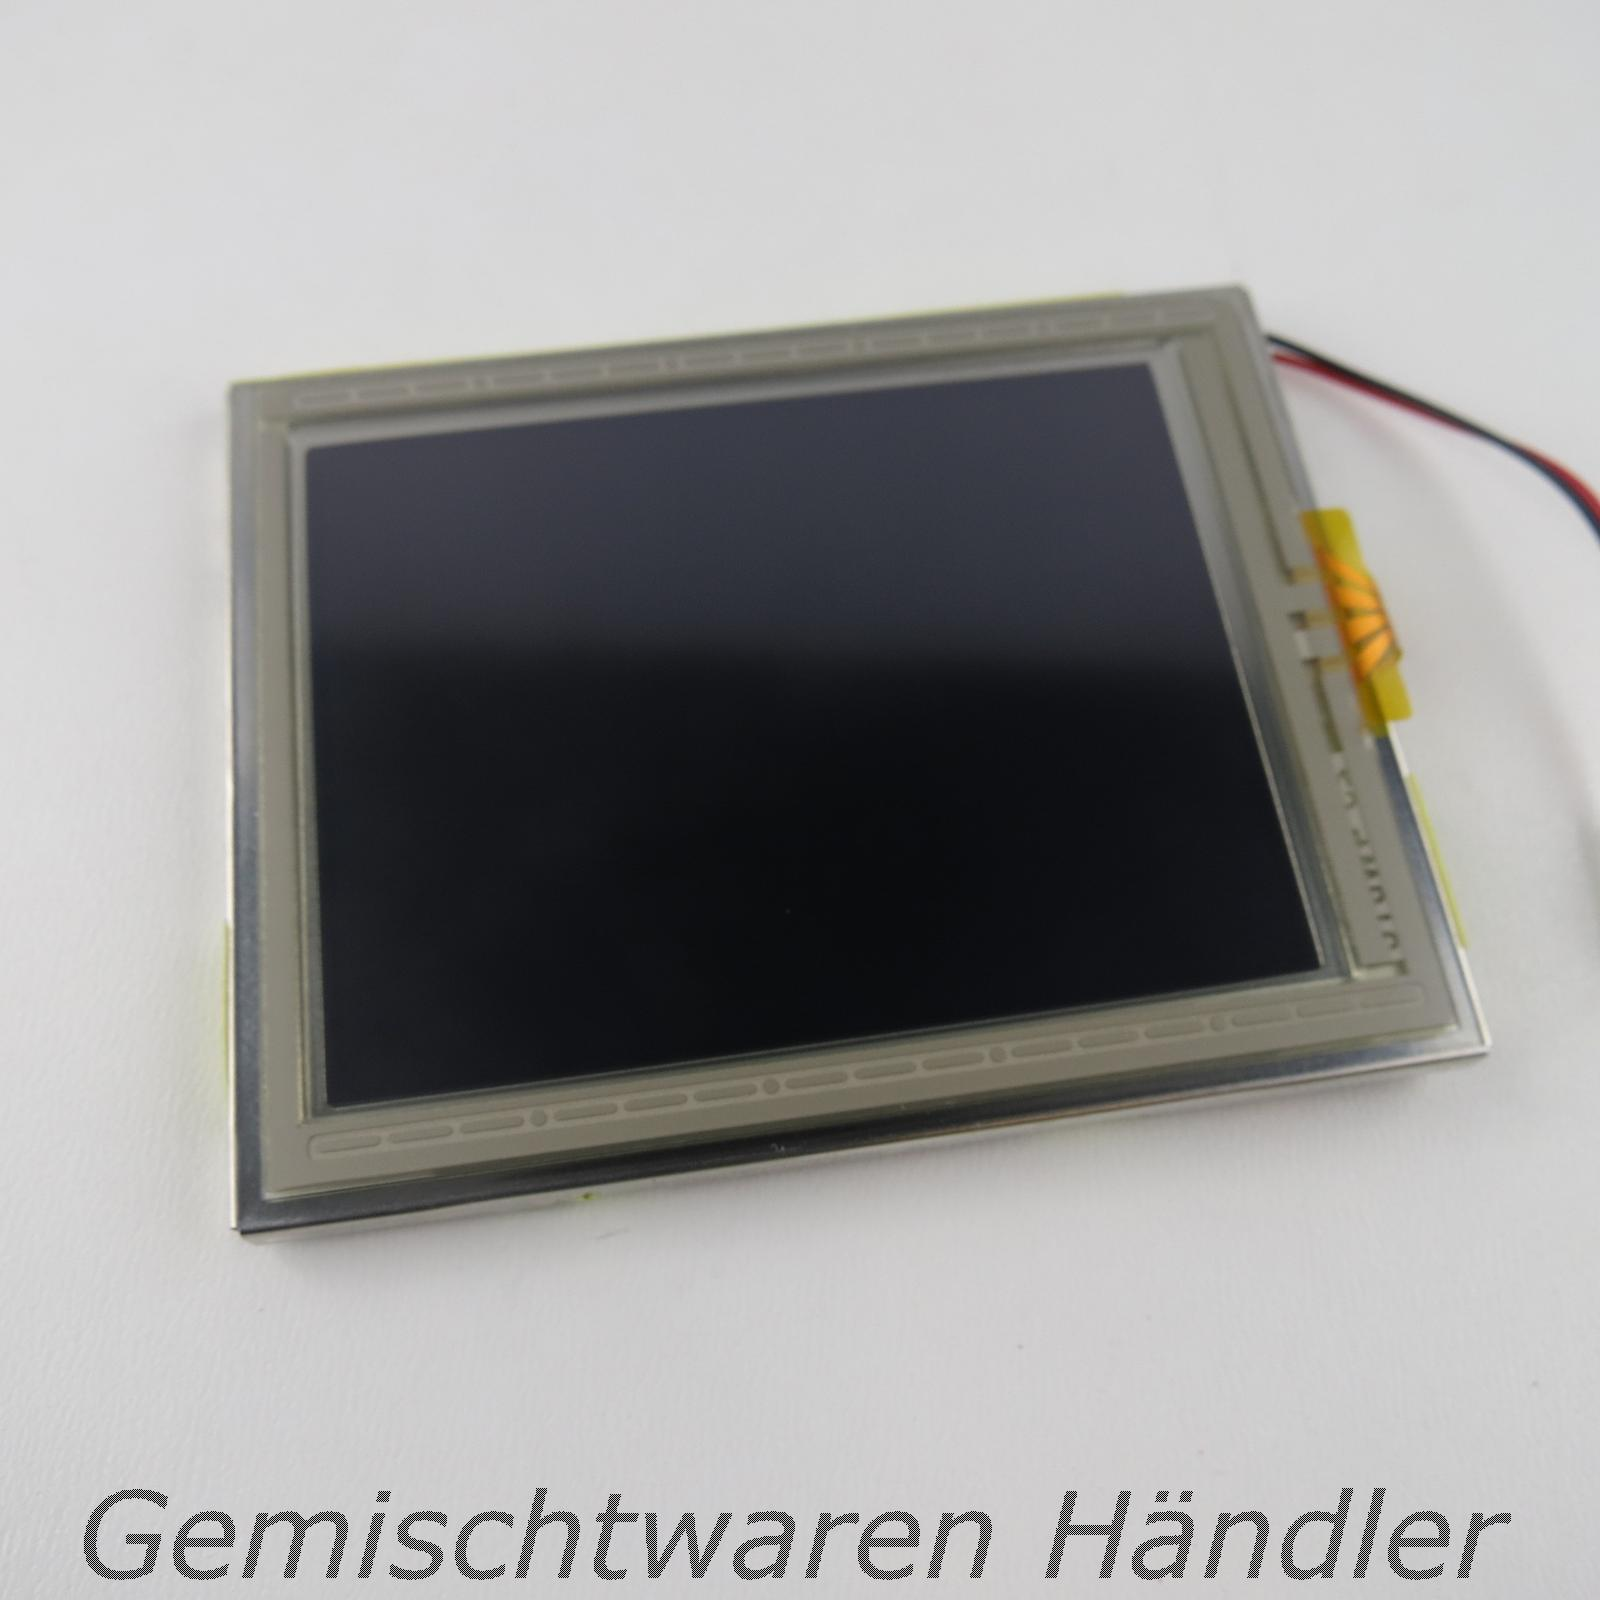 NEU-LCD-Grafik-Display-mit-Touch-Panel-LED-Beleuchtung-Modul-Arduino-AVR-PIC